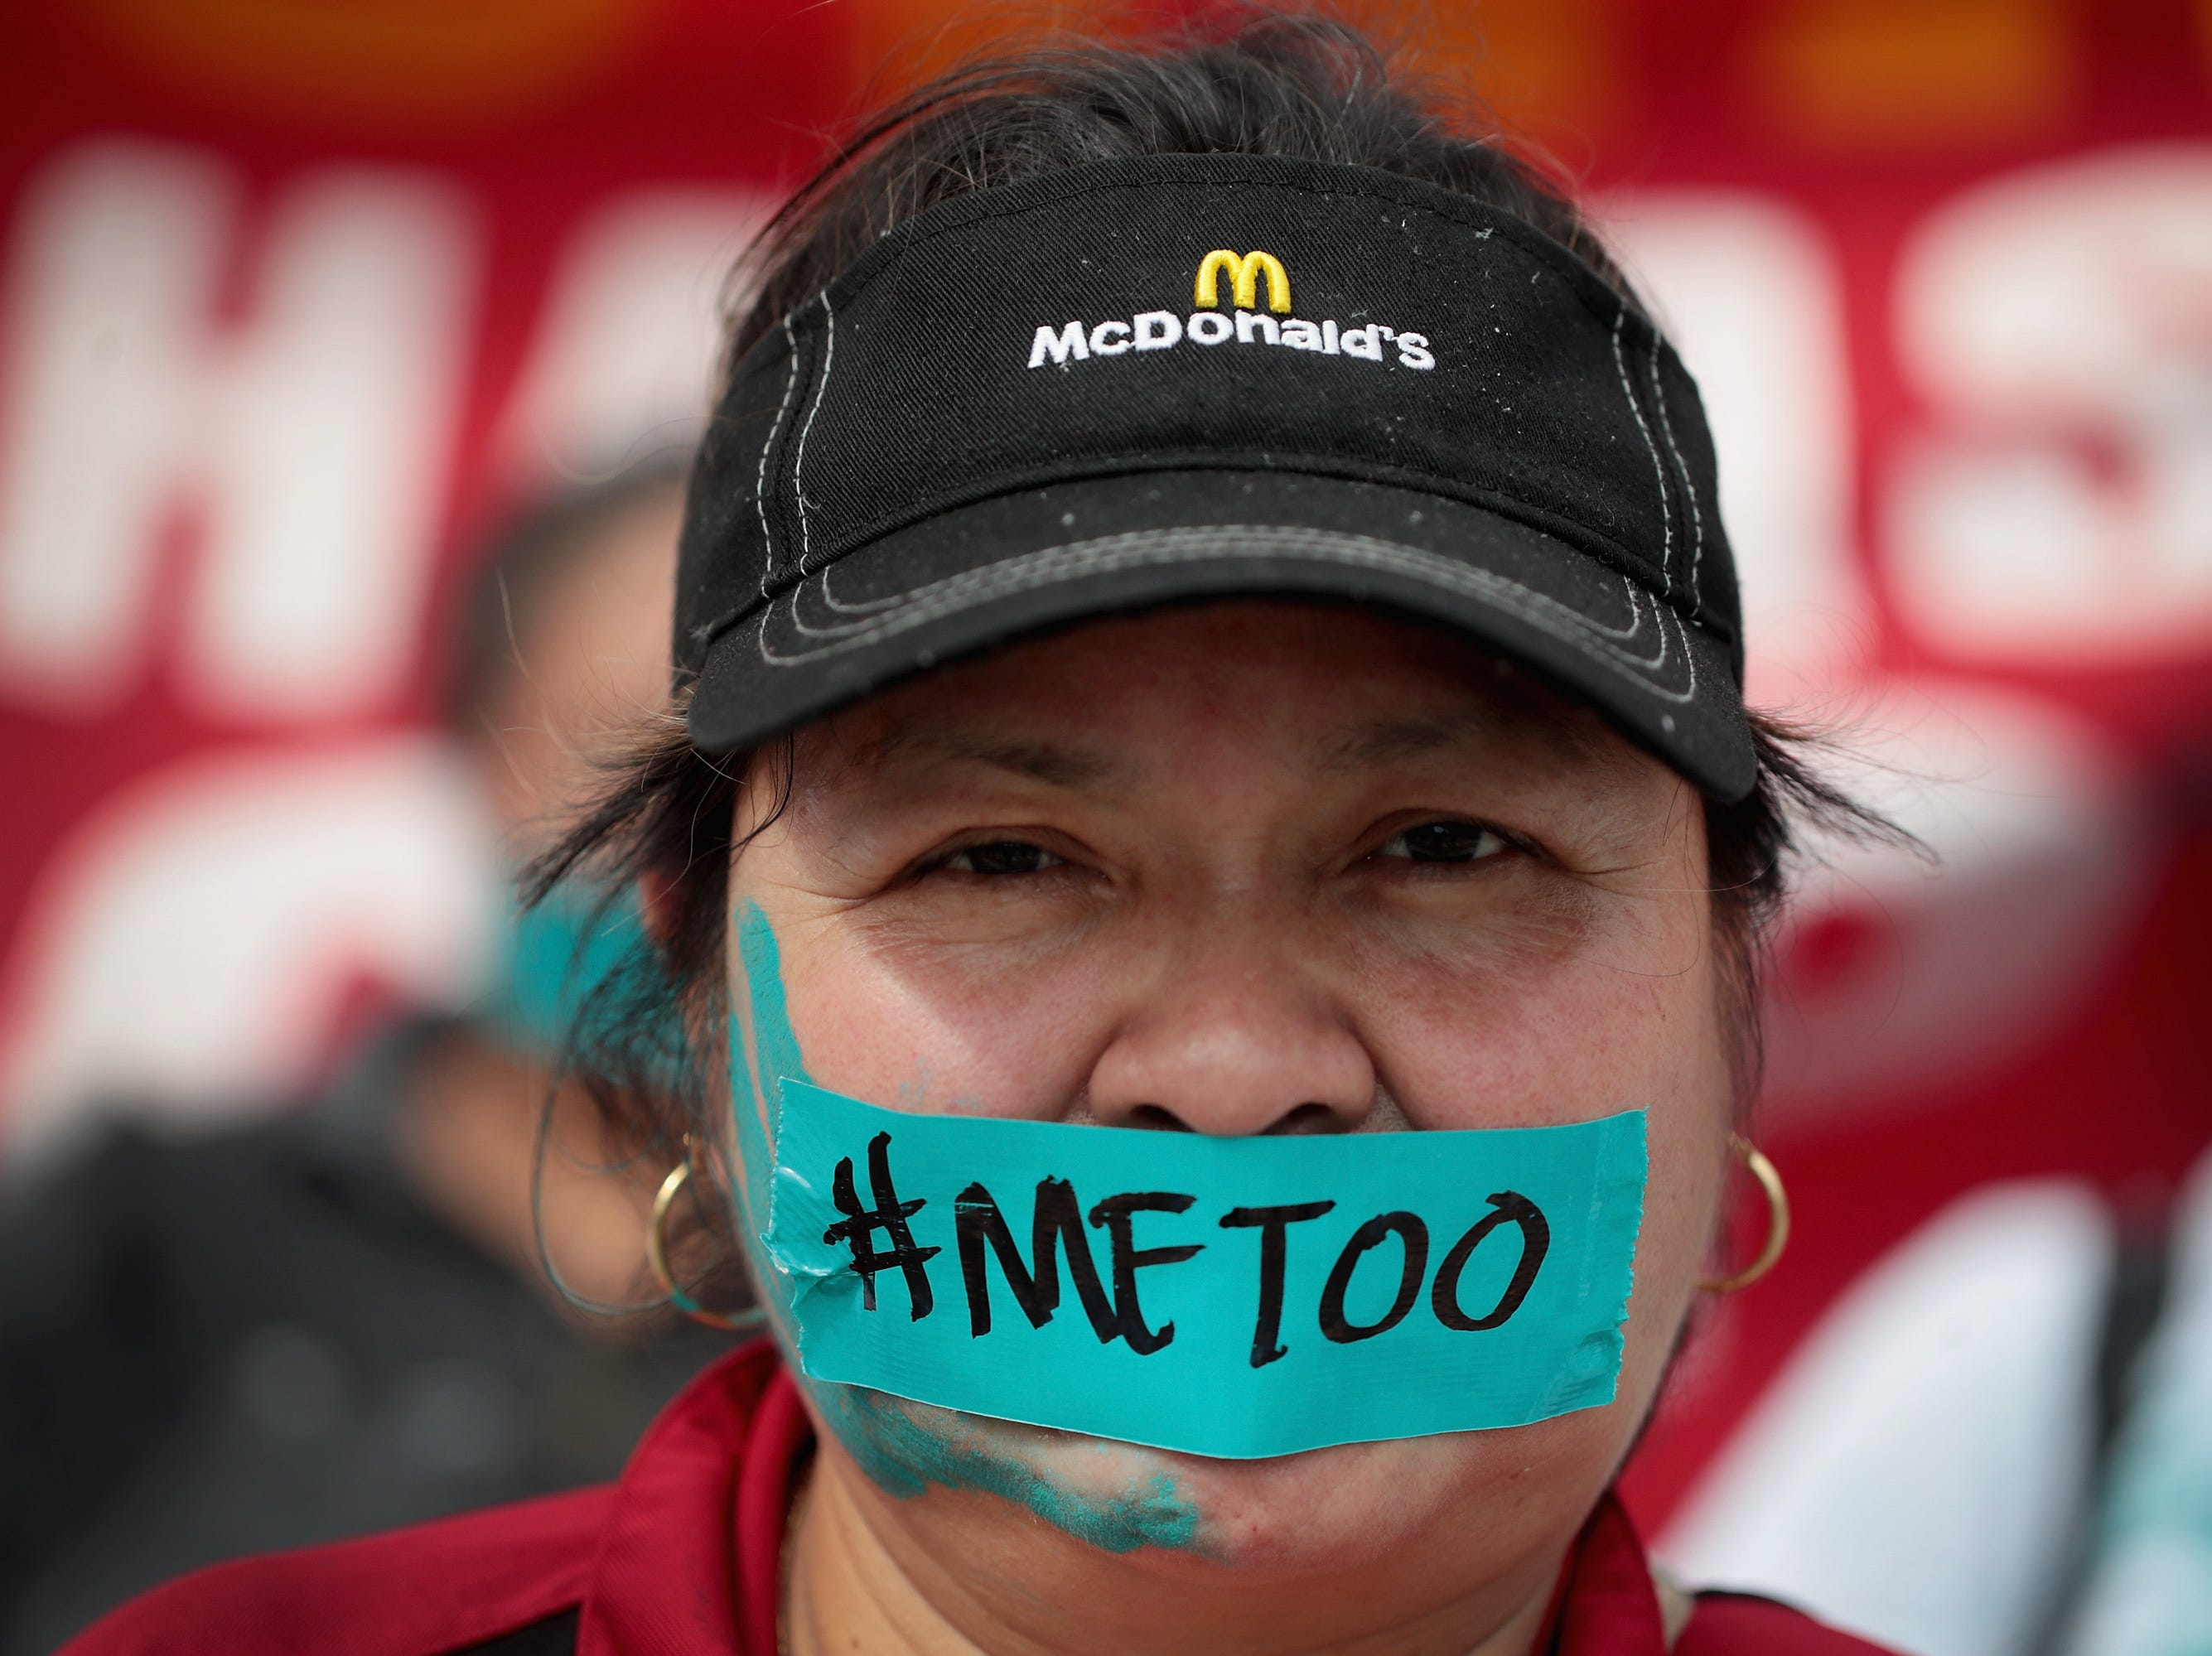 """Sept. 18, 2018: McDonald's workers are joined by other activists as they march toward the company's headquarters to protest sexual harassment at the fast food chain's restaurants in Chicago, Ill. Similar actions which took place around the country and were touted as the first-ever nationwide """"strike"""" against sexual harassment in the fast food industry. According to a recent study forty percent of female fast-food workers experience unwanted sexual behavior on the job."""